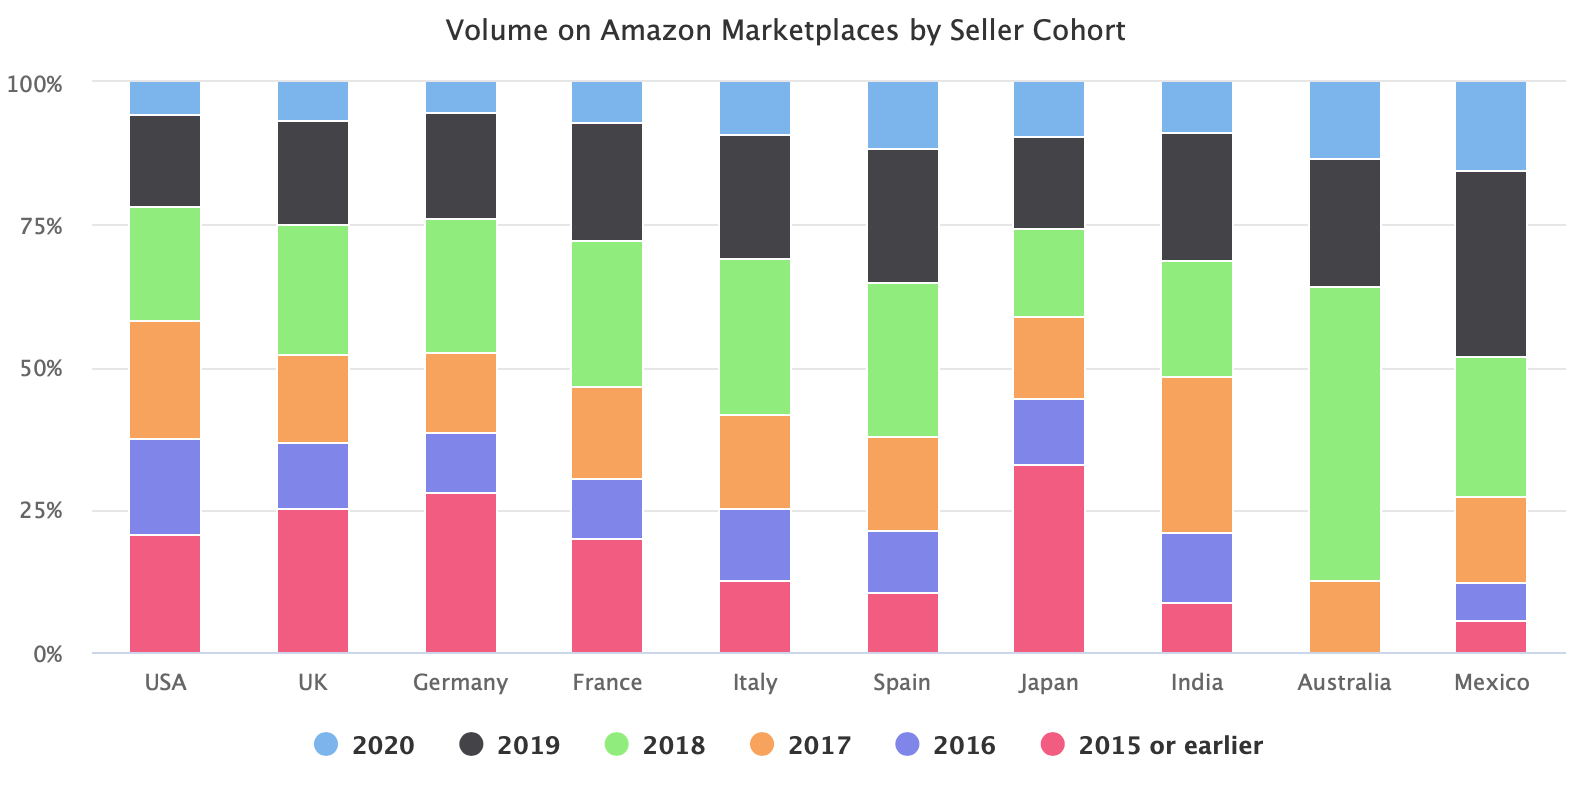 Volume on Amazon Marketplaces by Seller Cohort